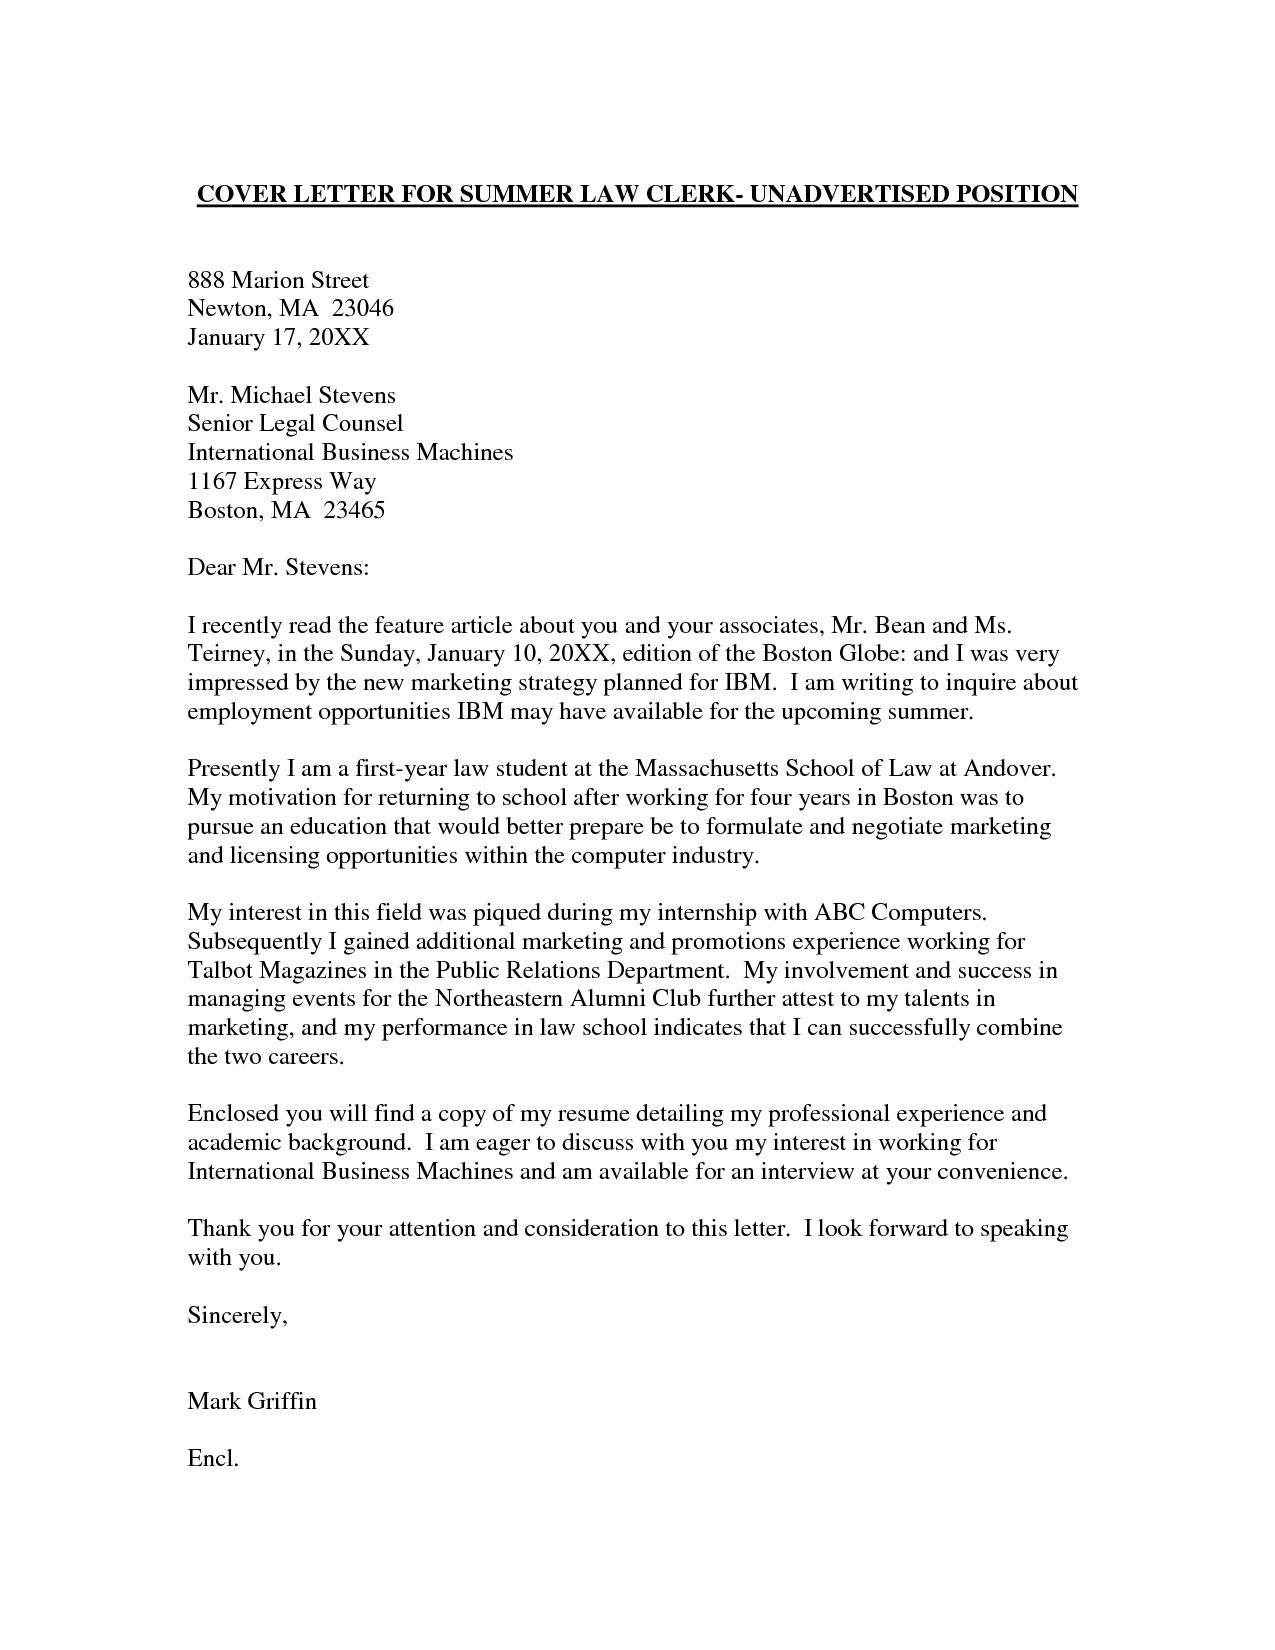 Cover Letters that Get the Job Employment Cover Letter Template Wondercover Letter